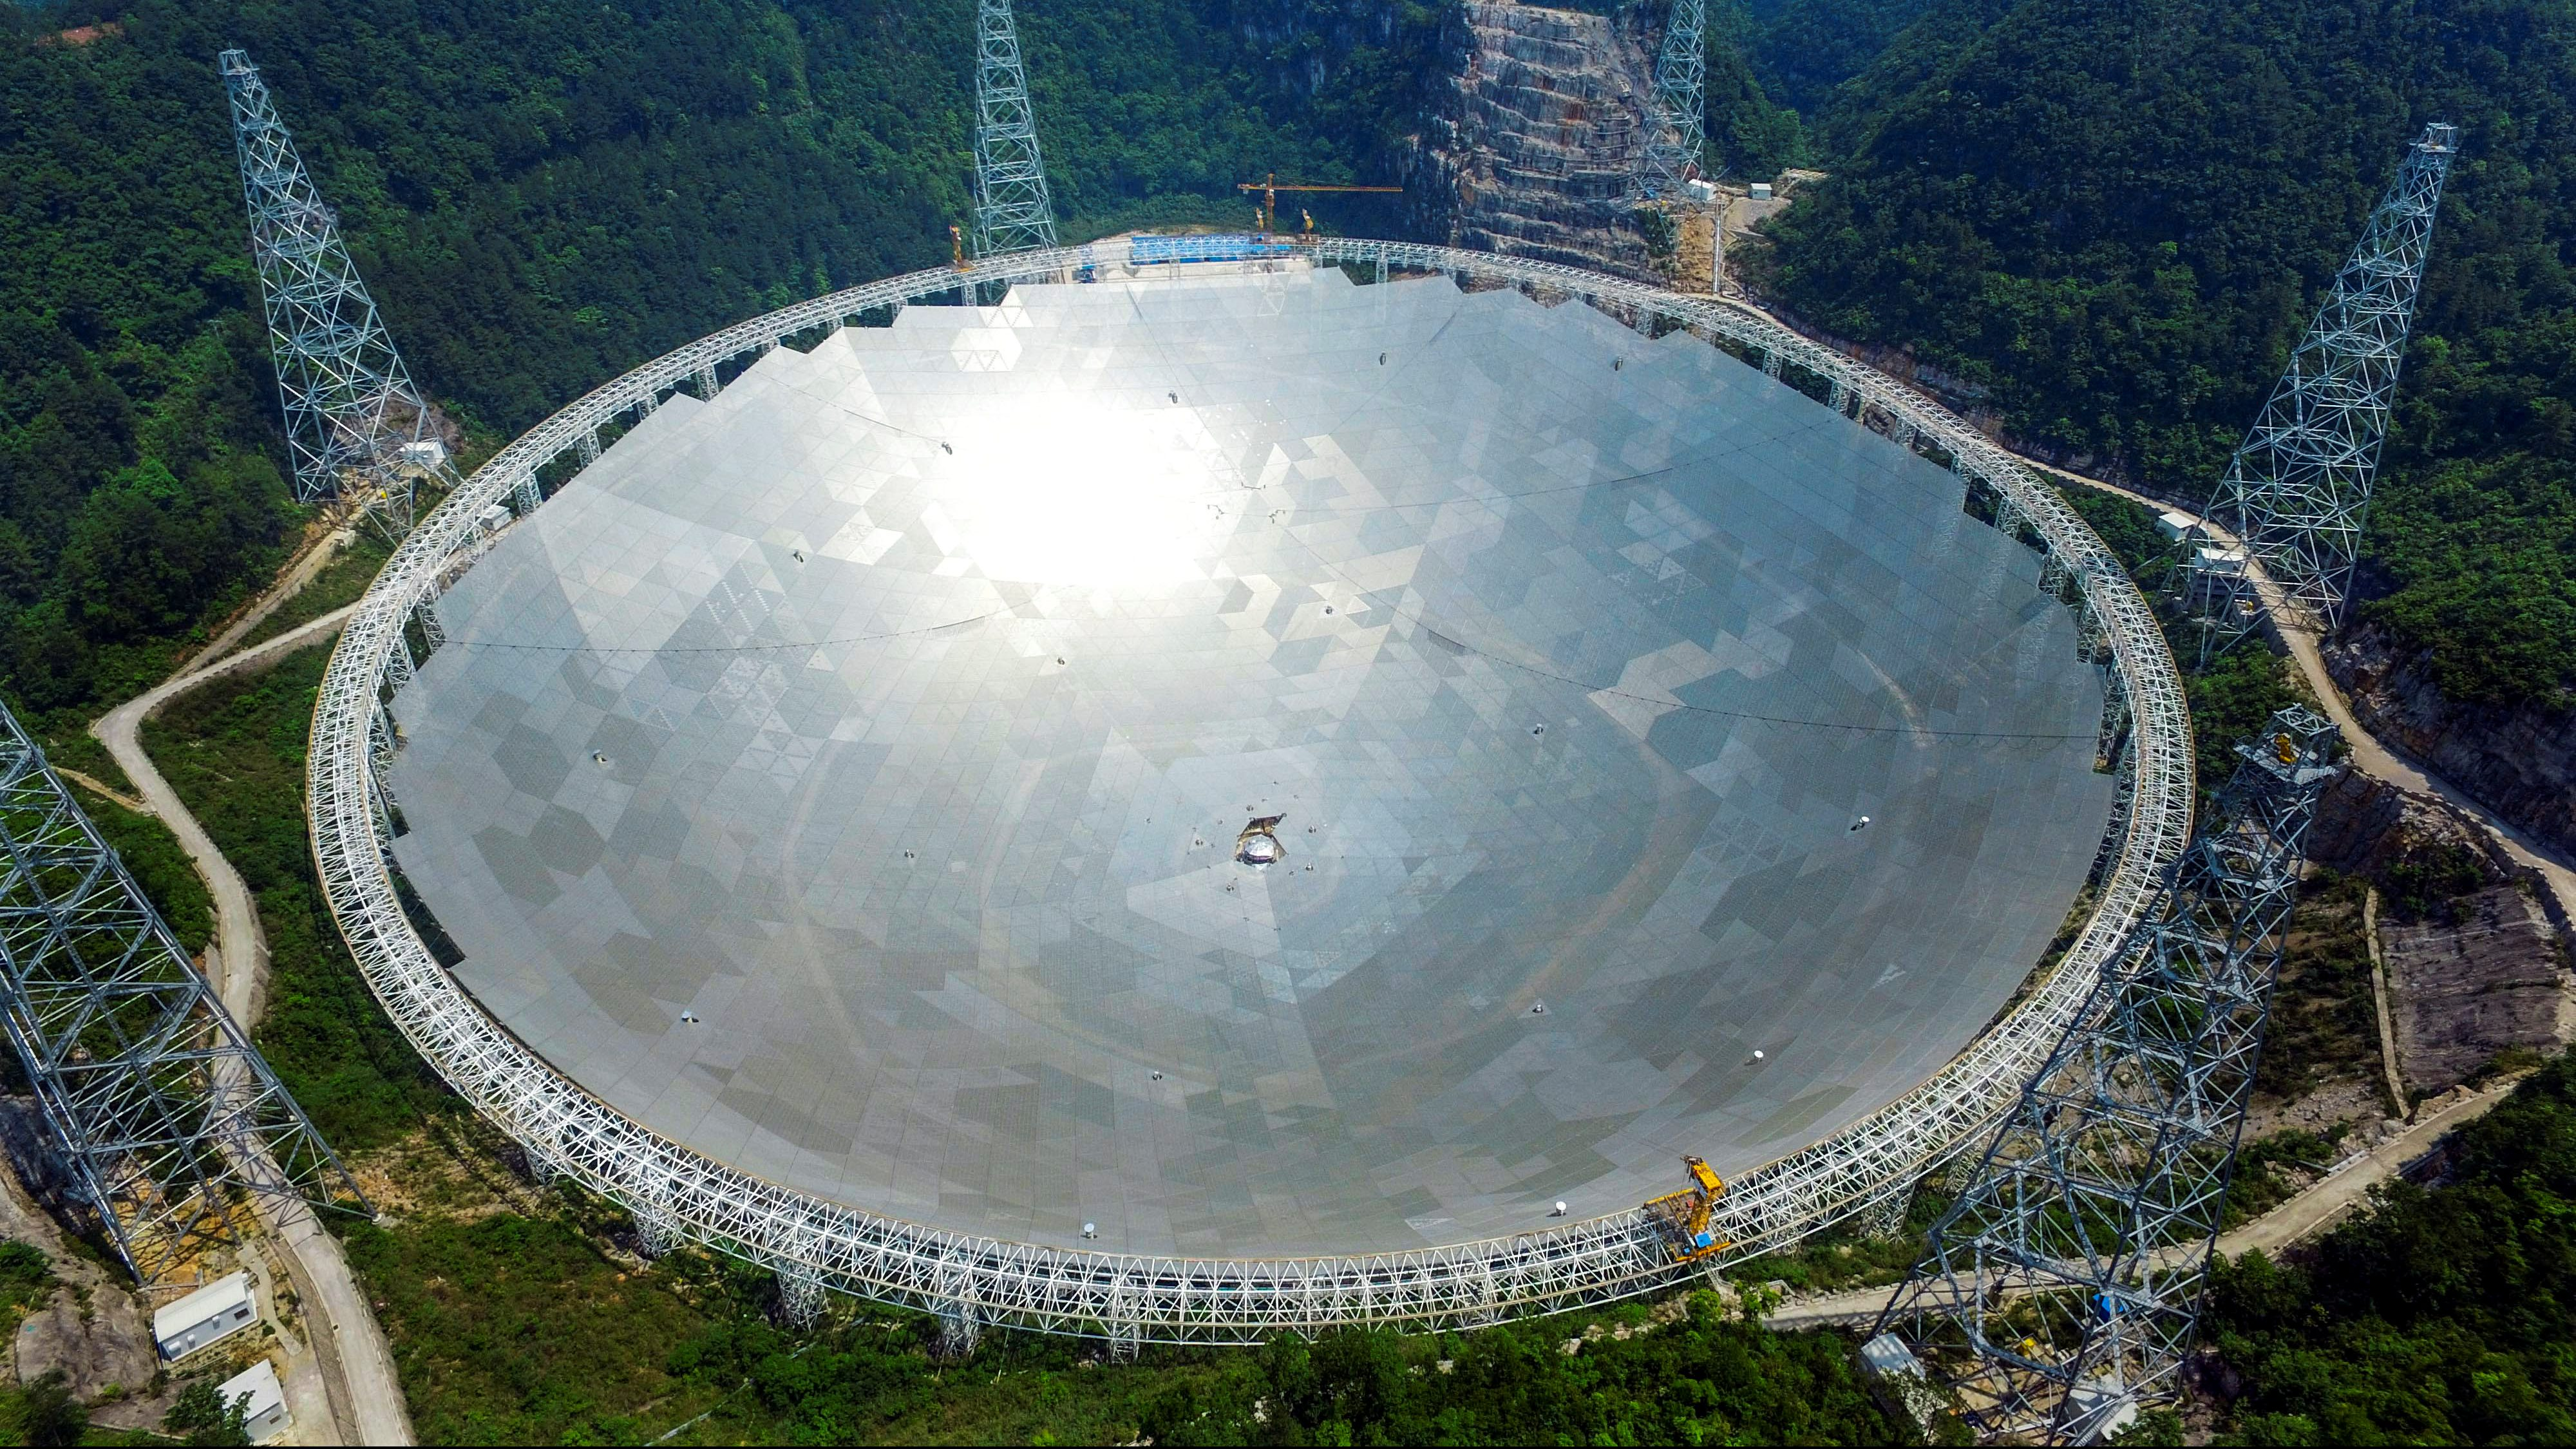 A 500-metre (1,640-ft.) aperture spherical telescope (FAST) is seen at the final stage of construction, among the mountains in Pingtang county, Guizhou province, China, May 7, 2016.